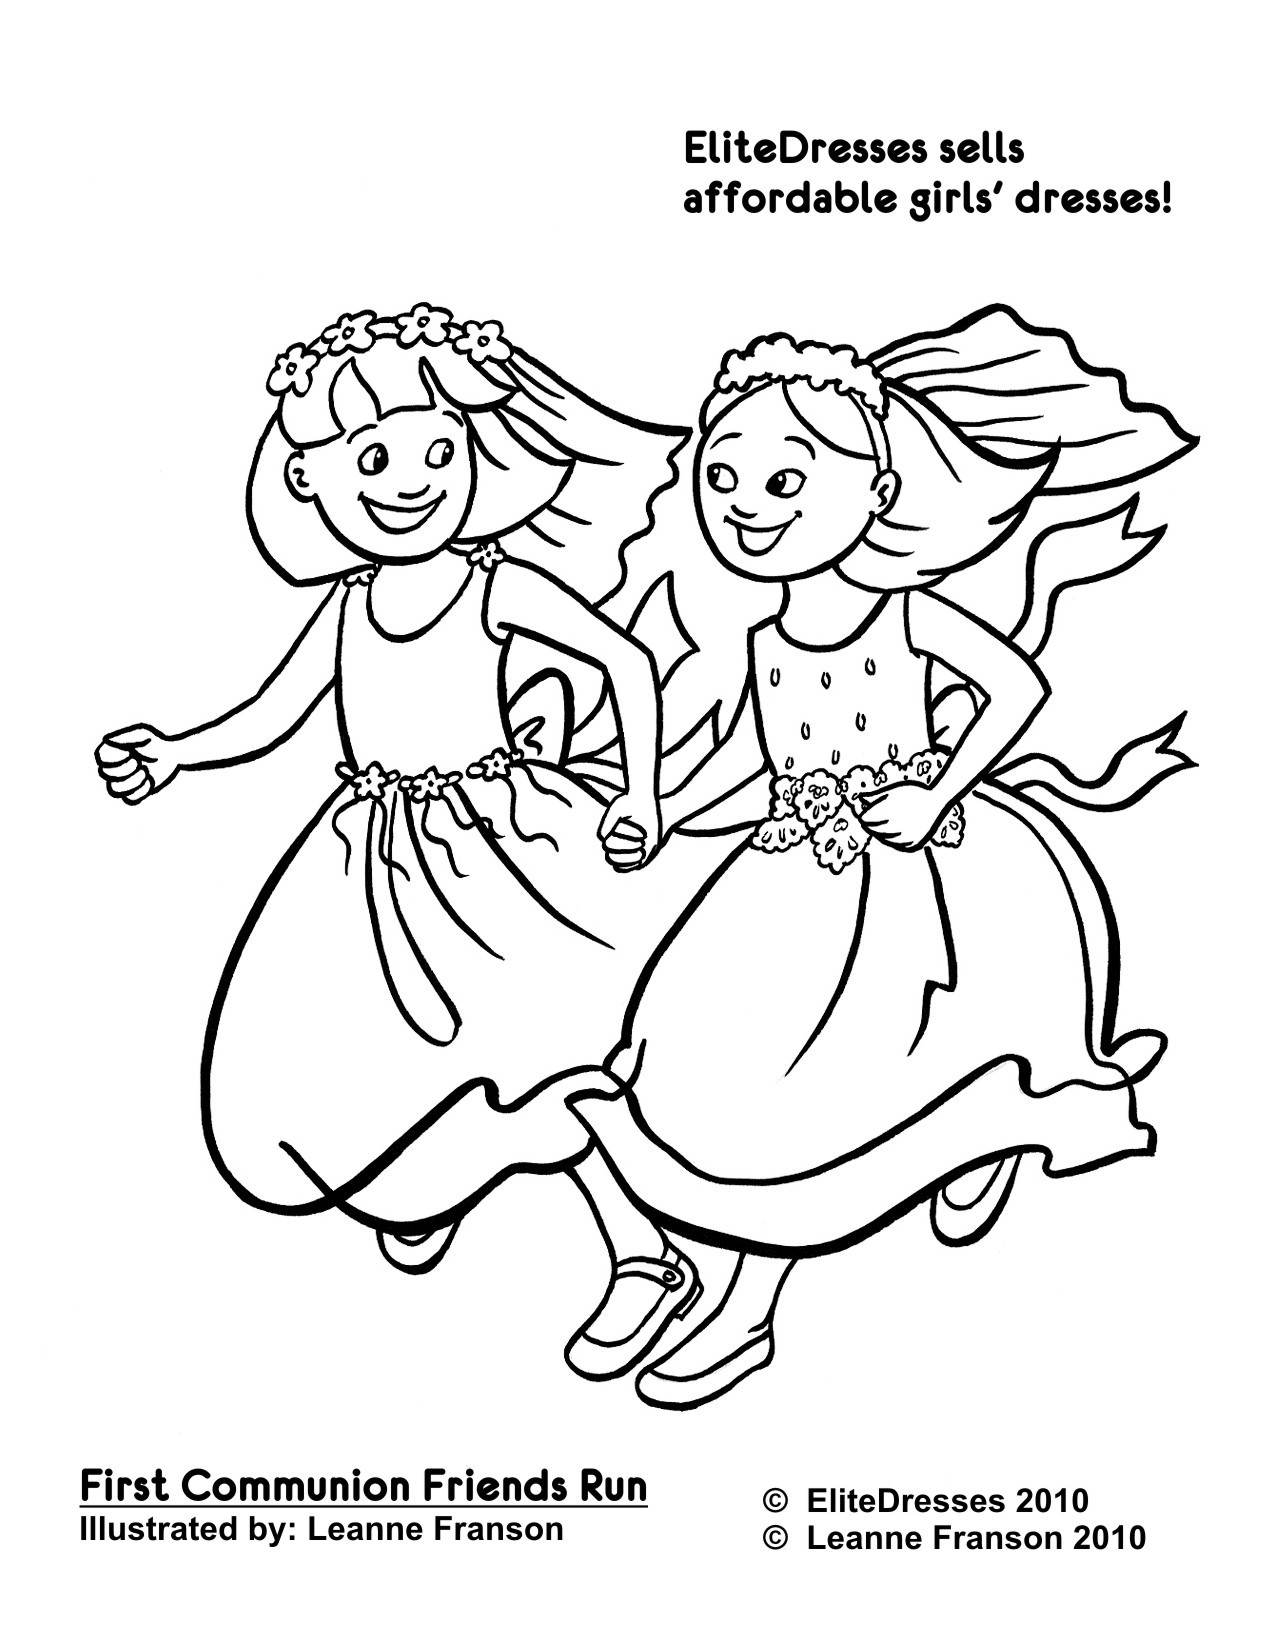 Friendship Coloring Pages For Girls  Best Friend Coloring Pages For Girls – Color Bros